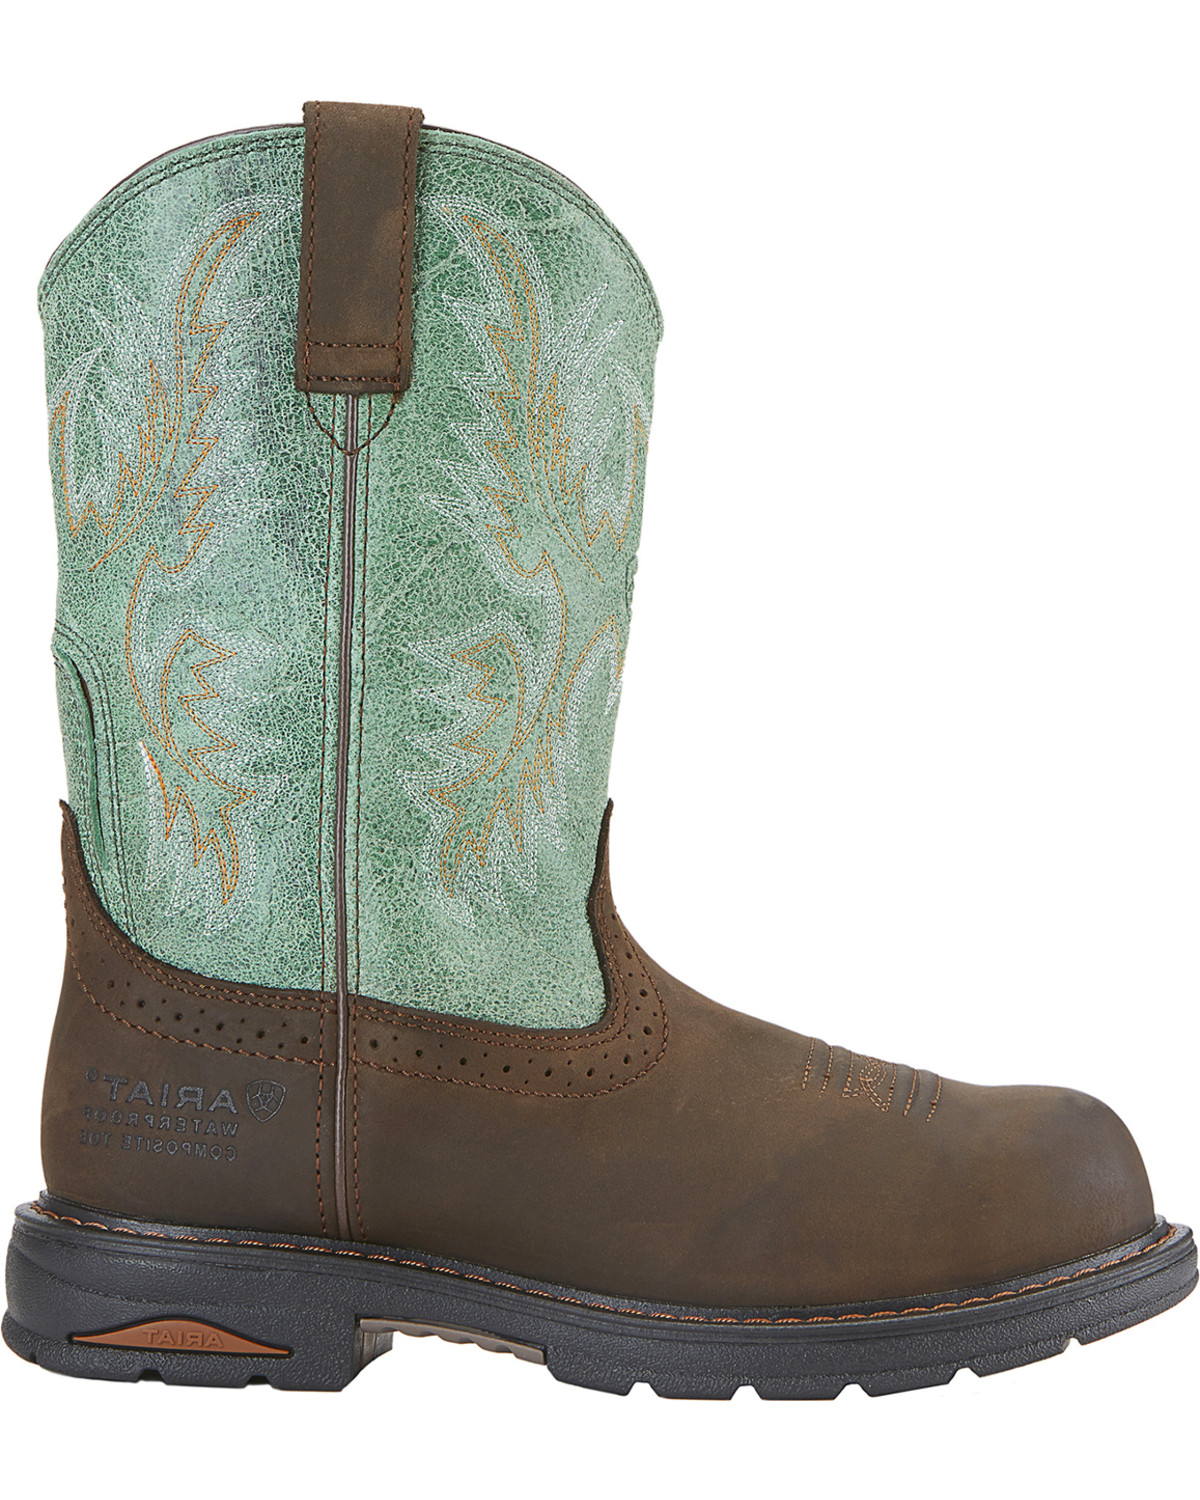 Ariat Tracey Pull-On Composite Toe(Women's) -Dusted Brown Full Grain Leather Low Price Fee Shipping Store Sale With Paypal Sale Online Buy Cheap Cheapest Price yGpxMmCQpf